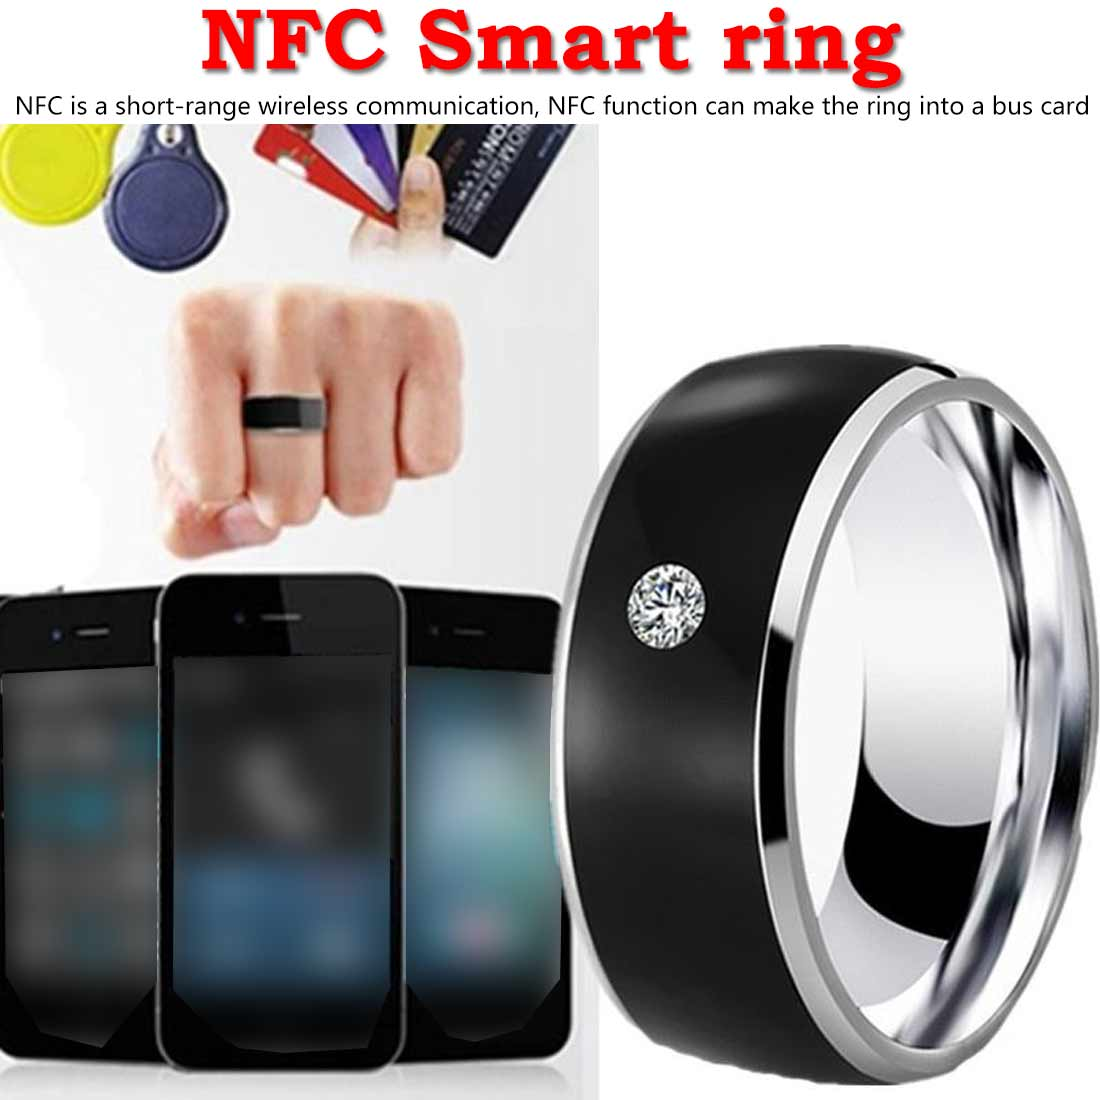 Nfc Multifunctionele Intelligente Ring Voor Alle Android Technologie Vinger Smart Slijtage Vinger Digitale Ring